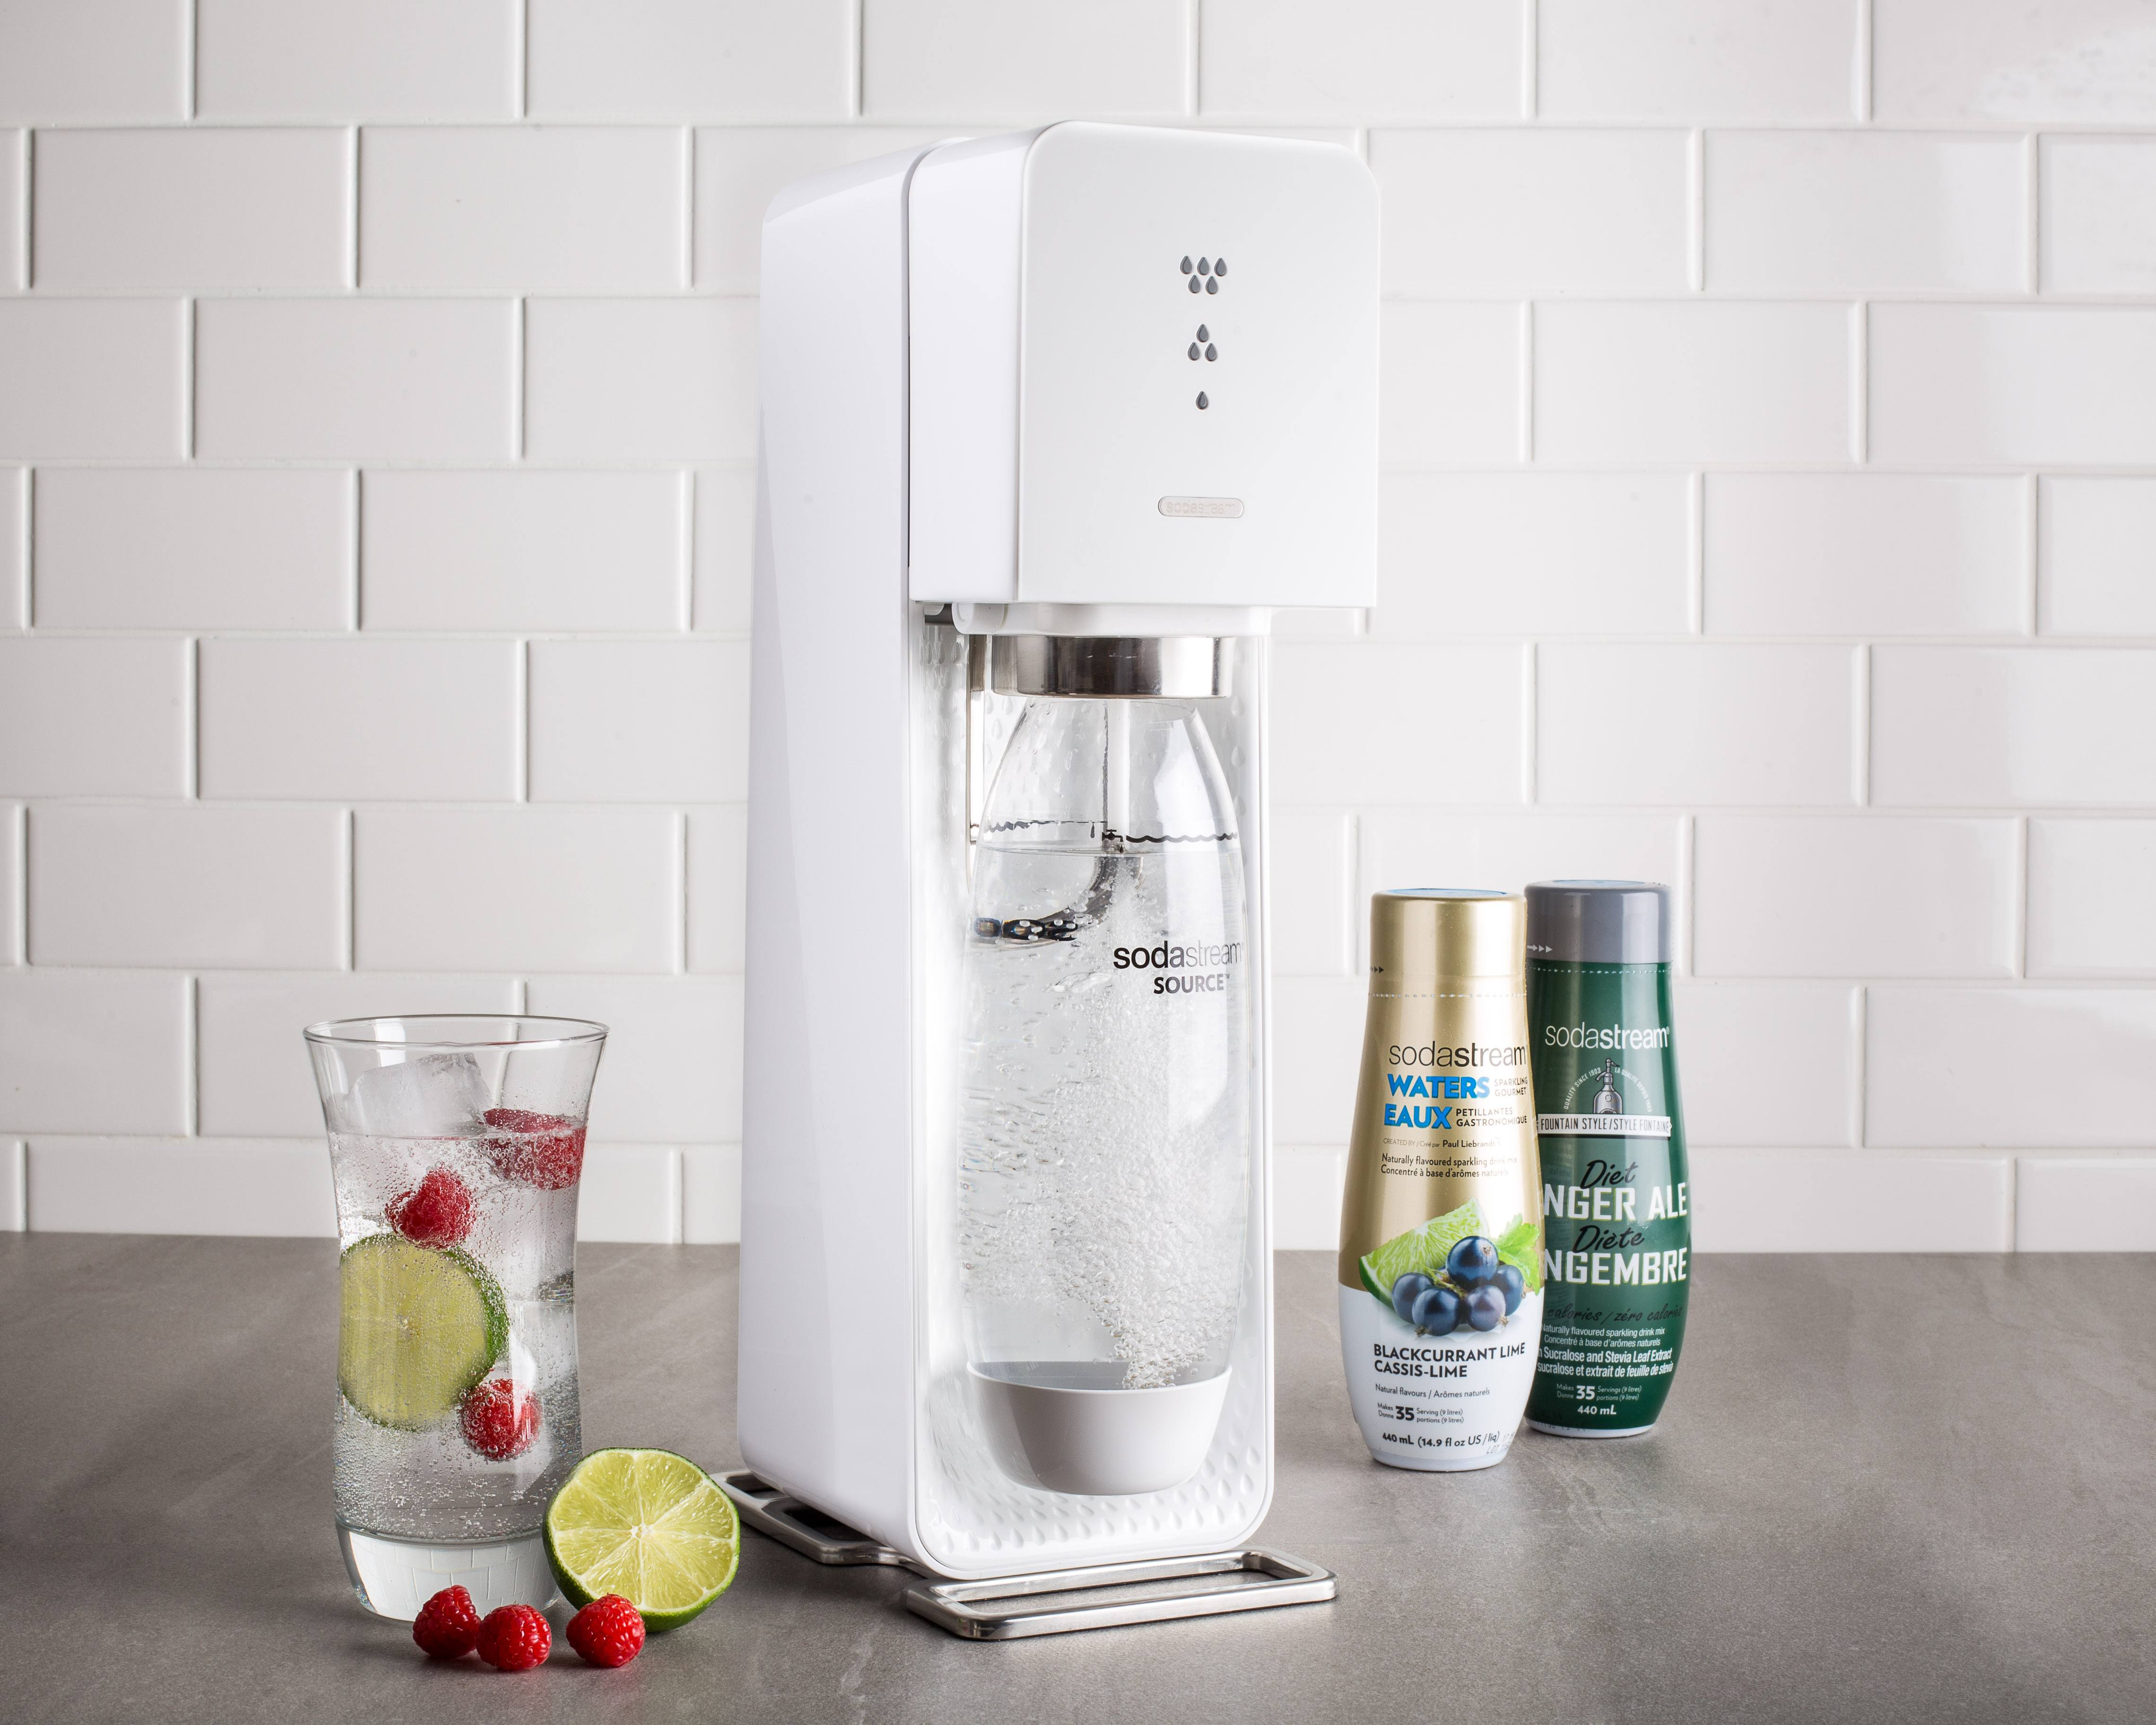 white sodastream with syrups